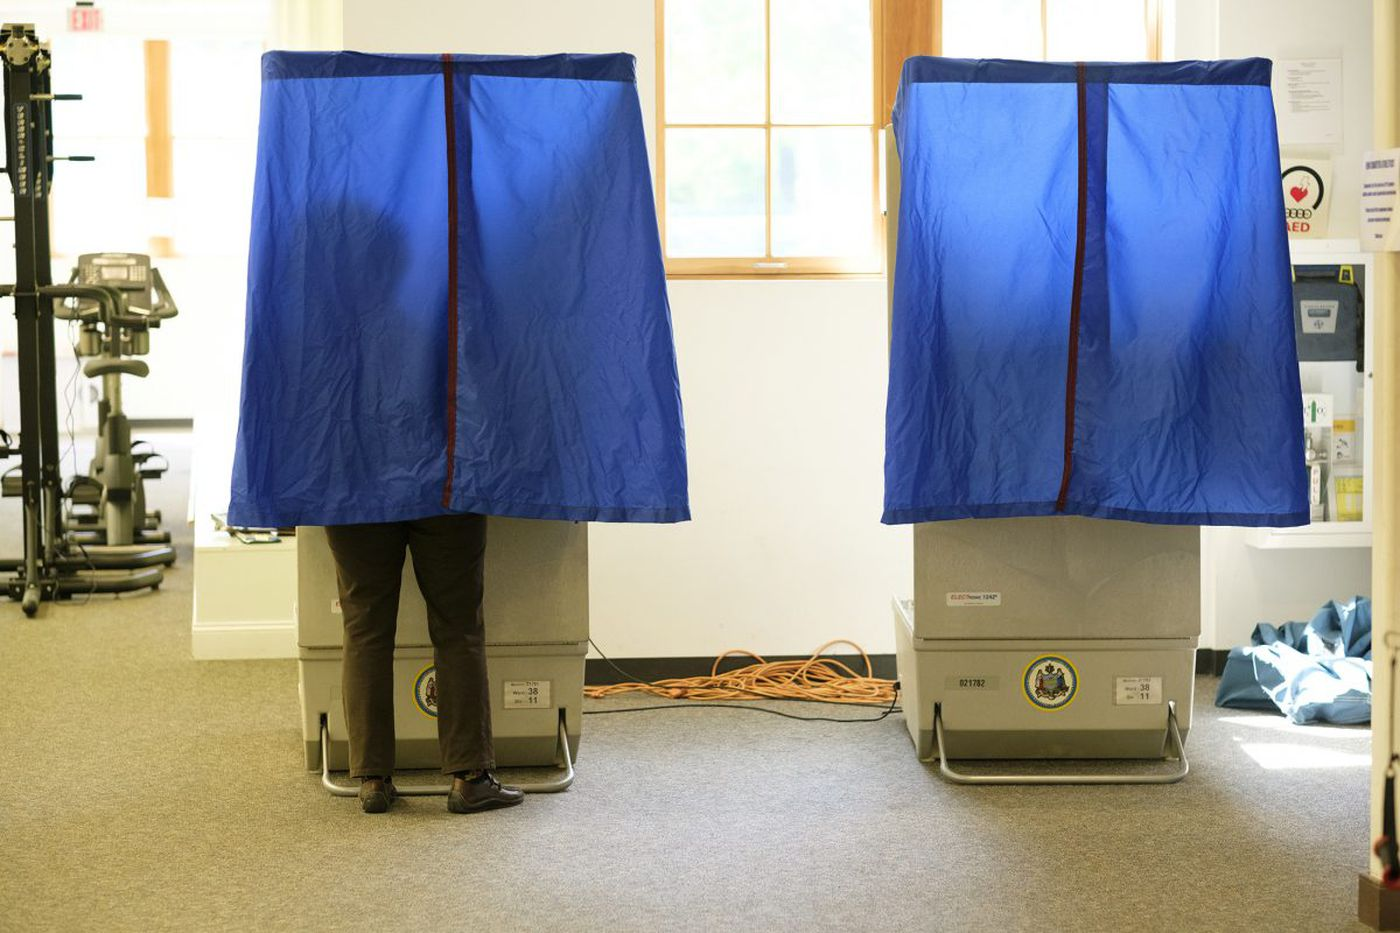 Voters Guide: 2017 Pennsylvania and New Jersey general elections